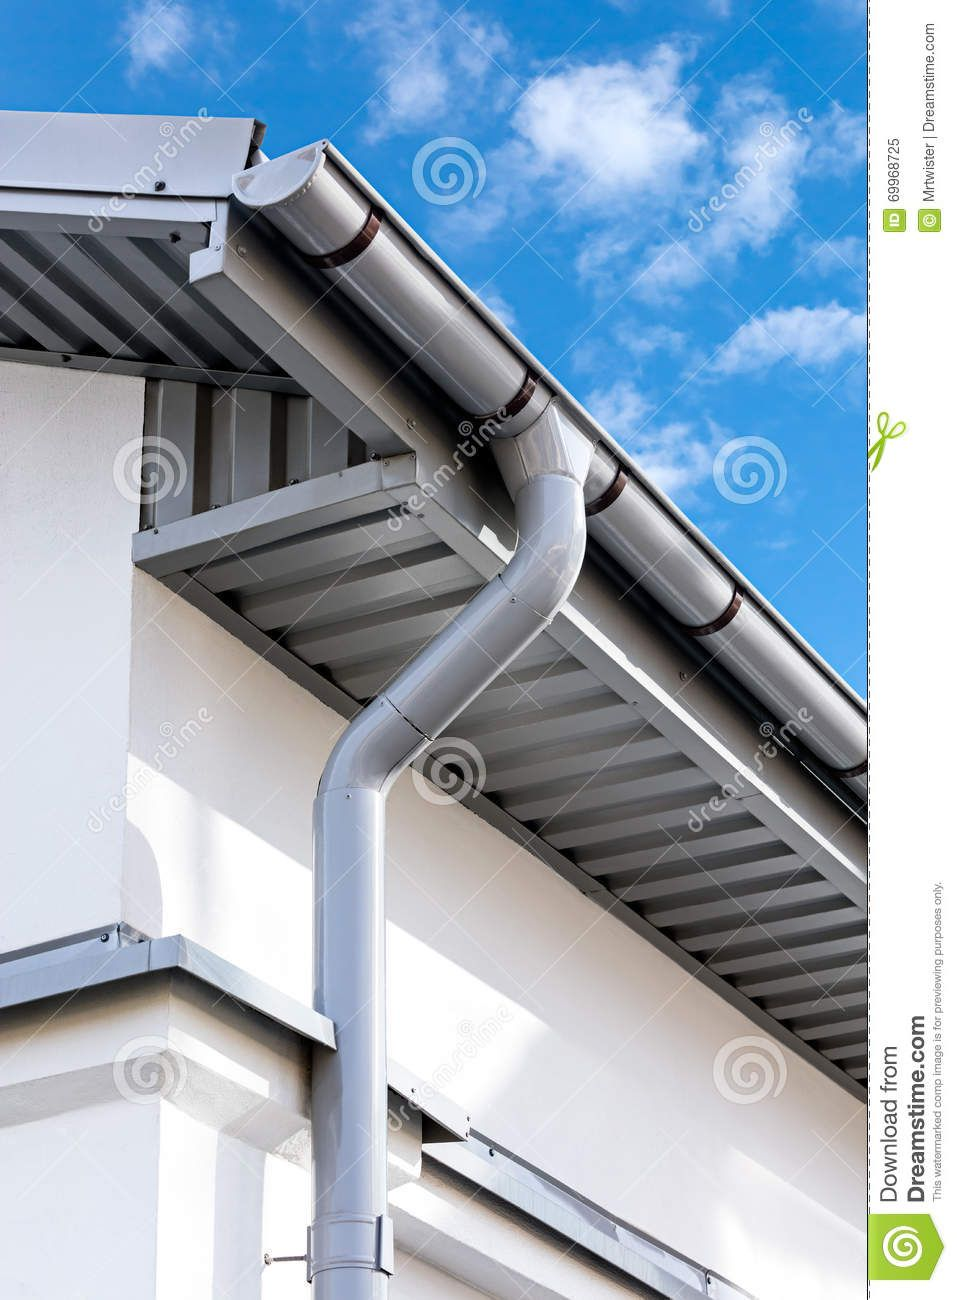 Photo About Newly Installed Gray Rain Gutter On House Rooftop Image Of Corner Gutter Build 69968725 Gutters Rain Gutters House Cladding